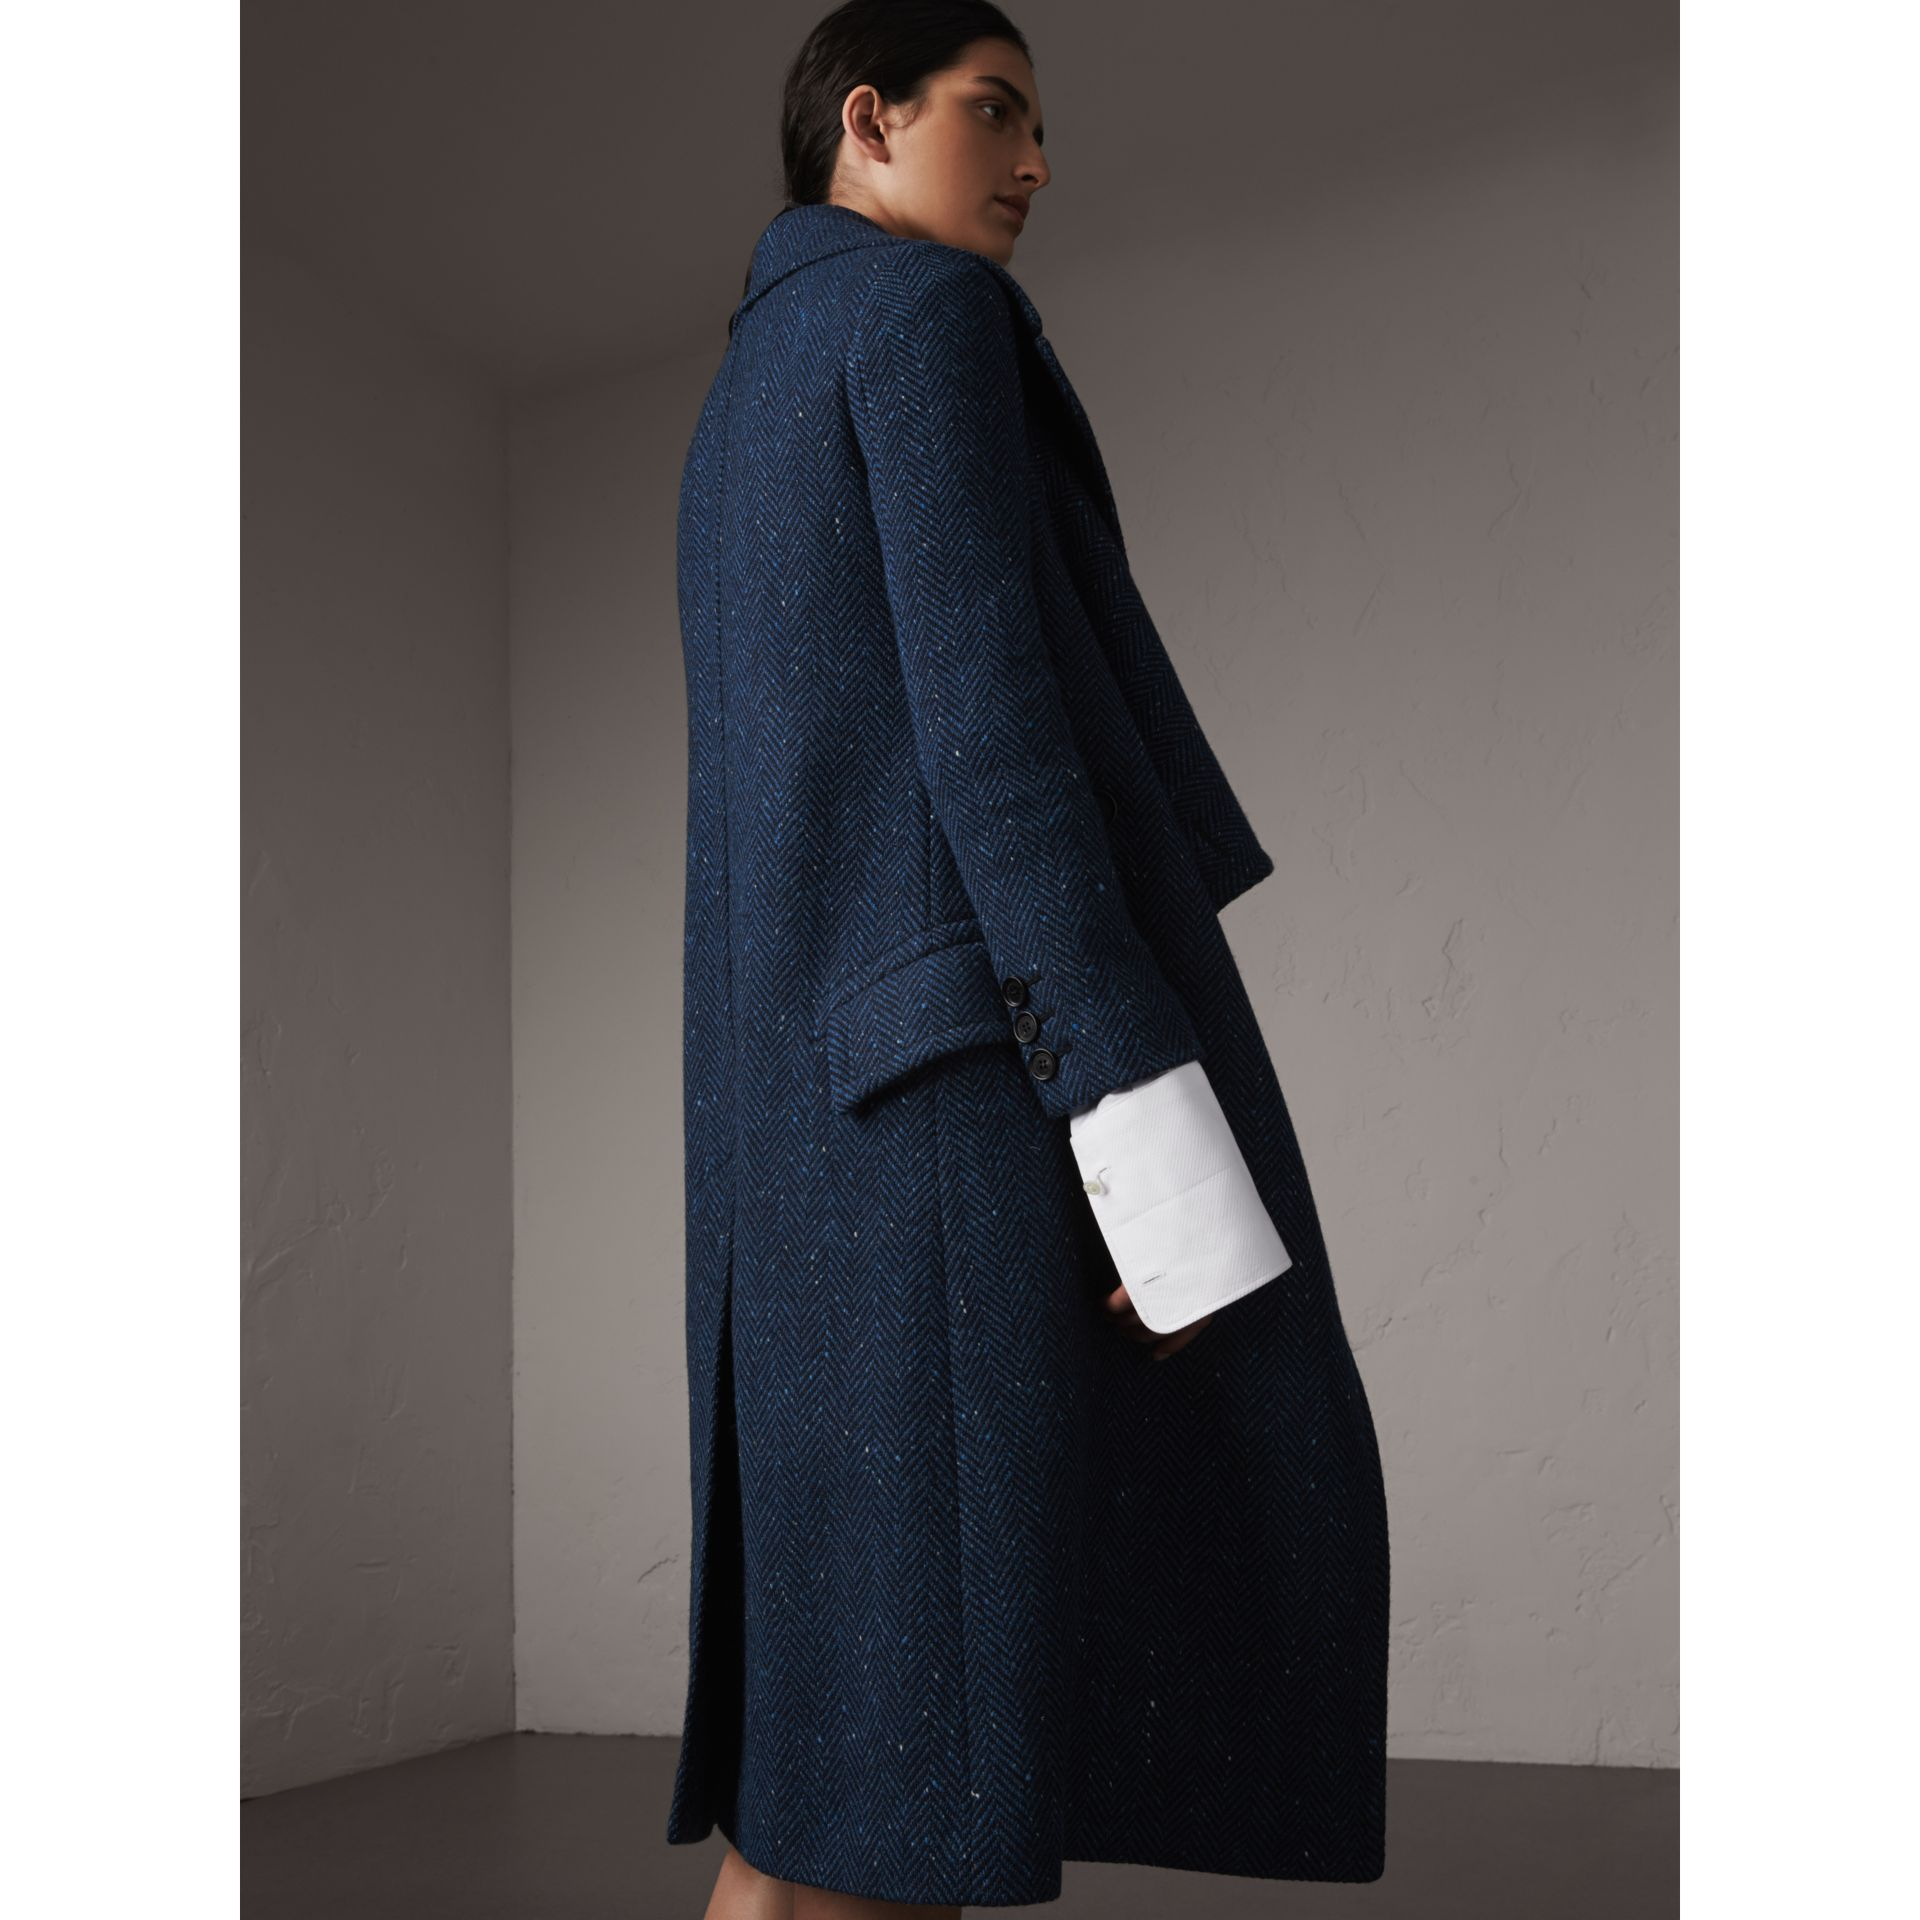 Herringbone Wool Cashmere Tweed Asymmetric Coat - Women | Burberry - gallery image 3